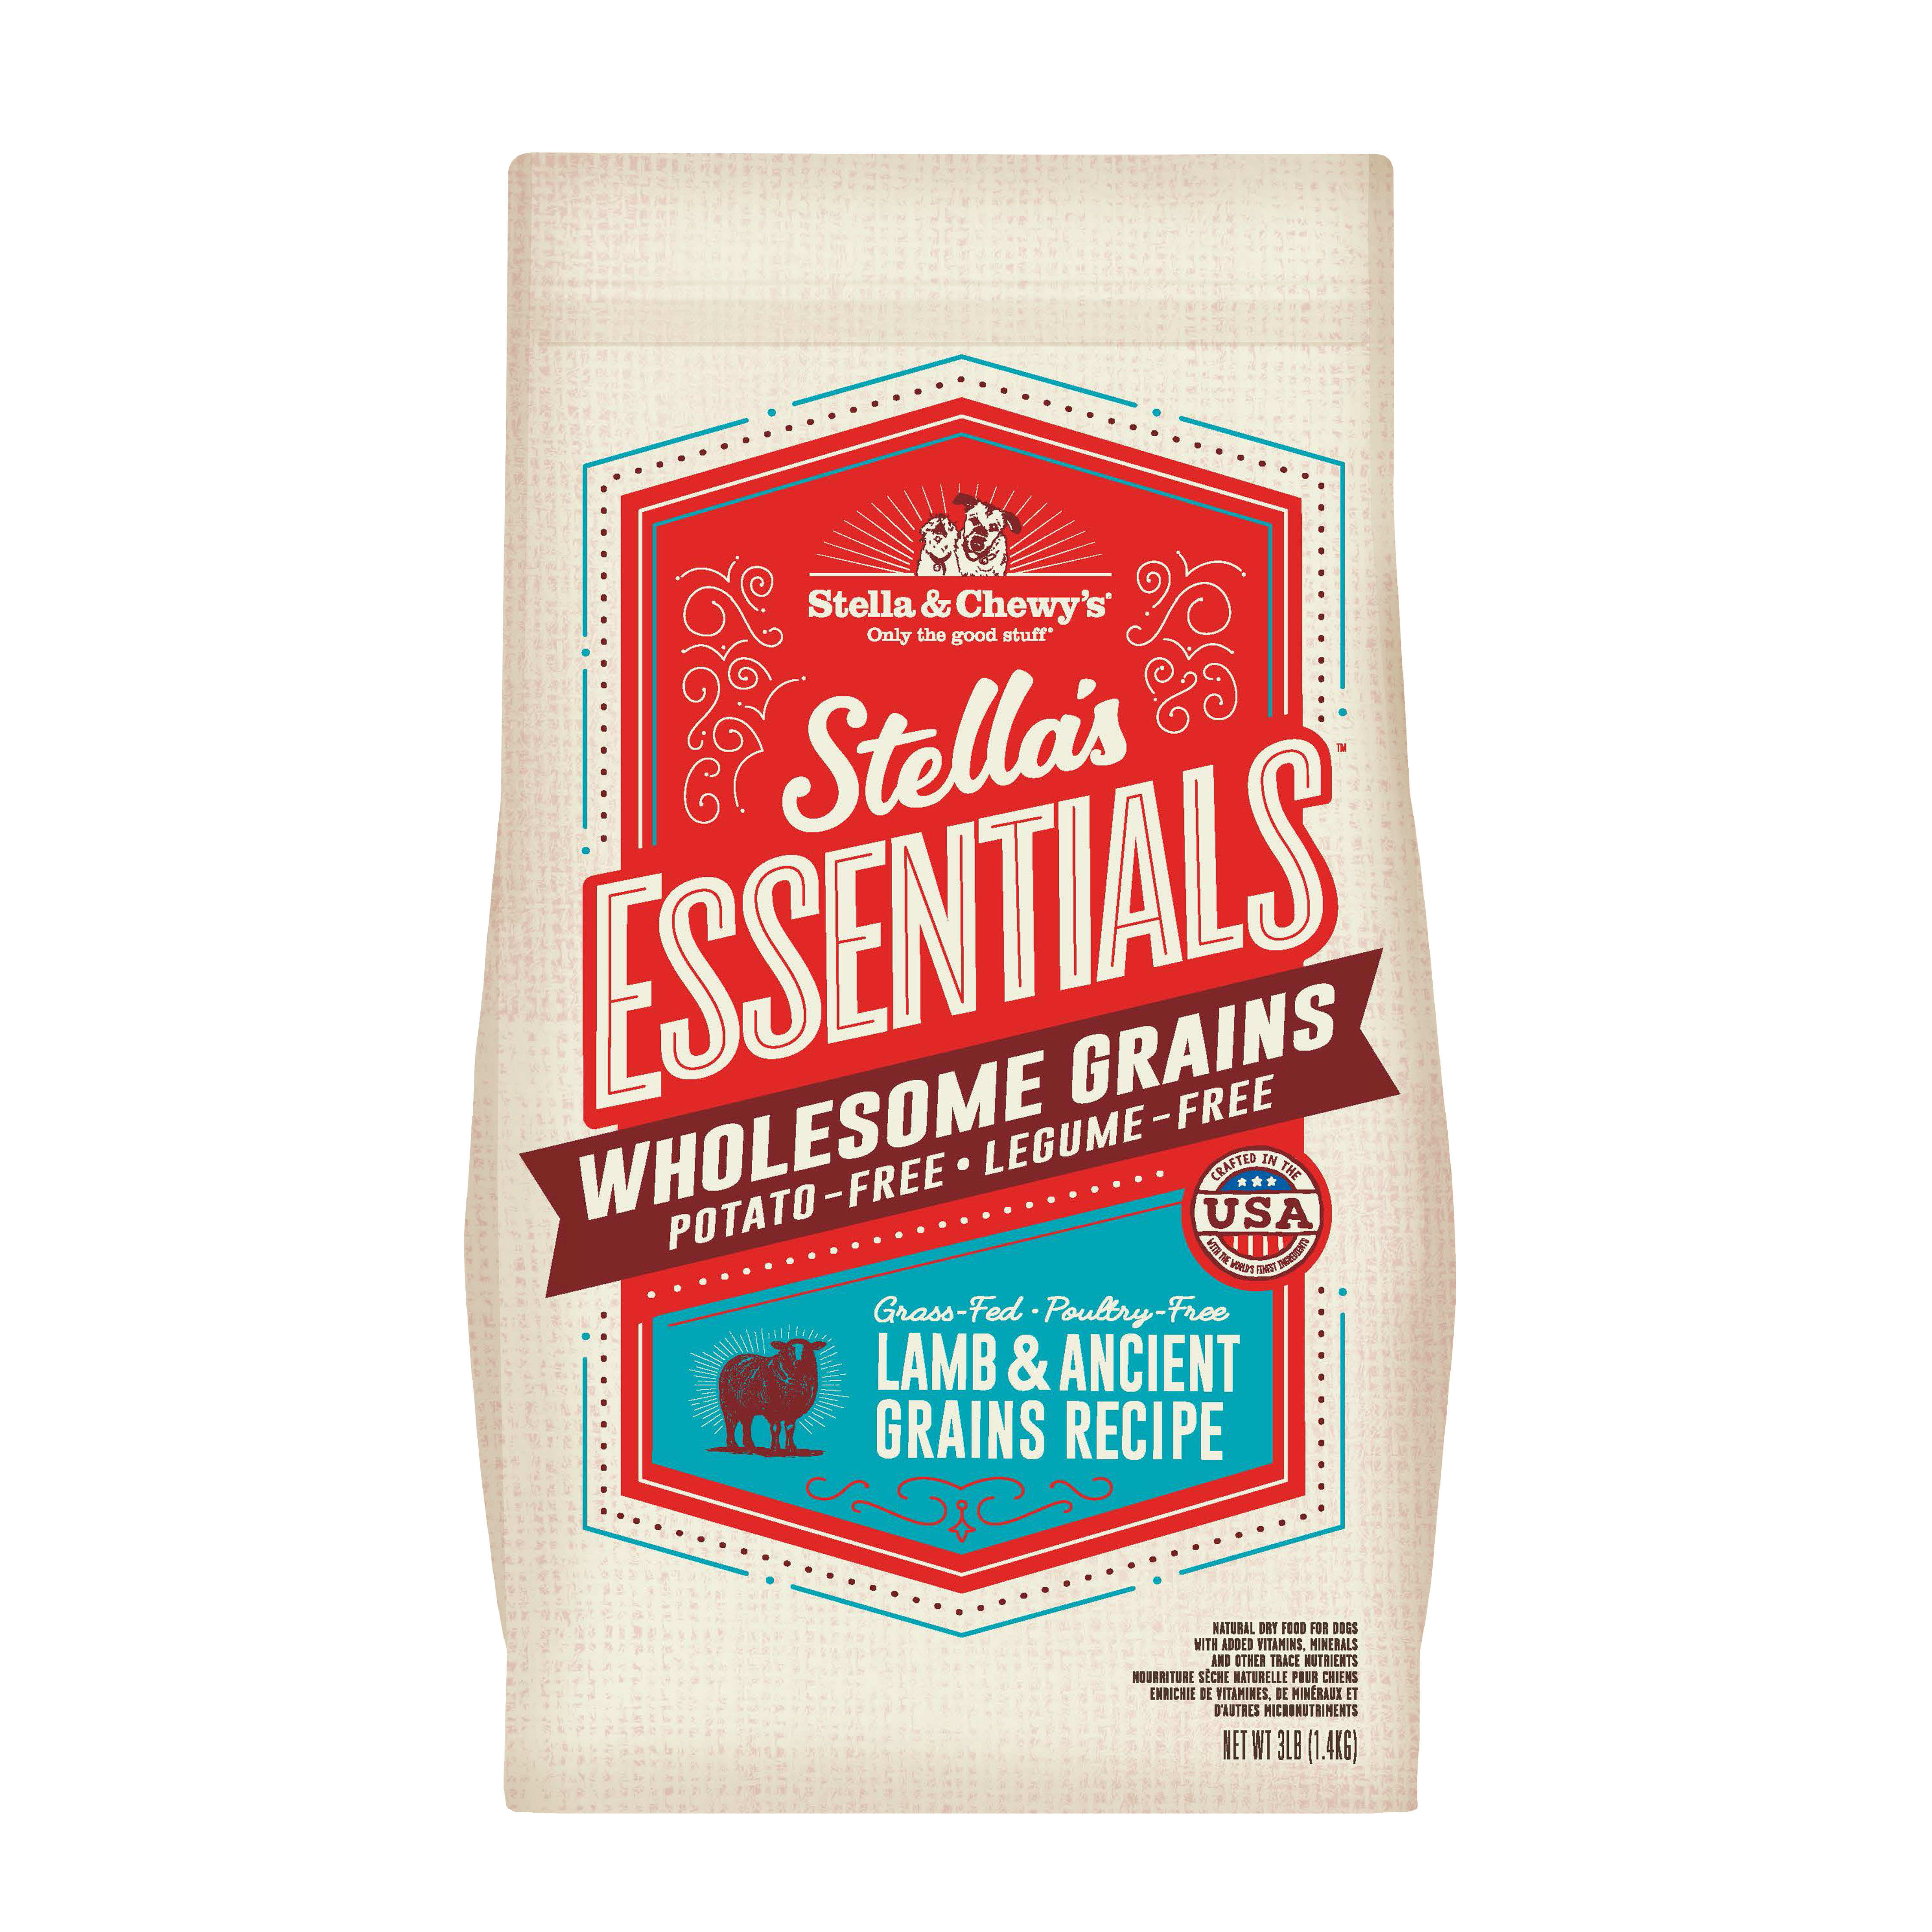 Stella & Chewy's Essentials Wholesome Grains Lamb & Ancient Grains Dry Dog Food, 25-lb